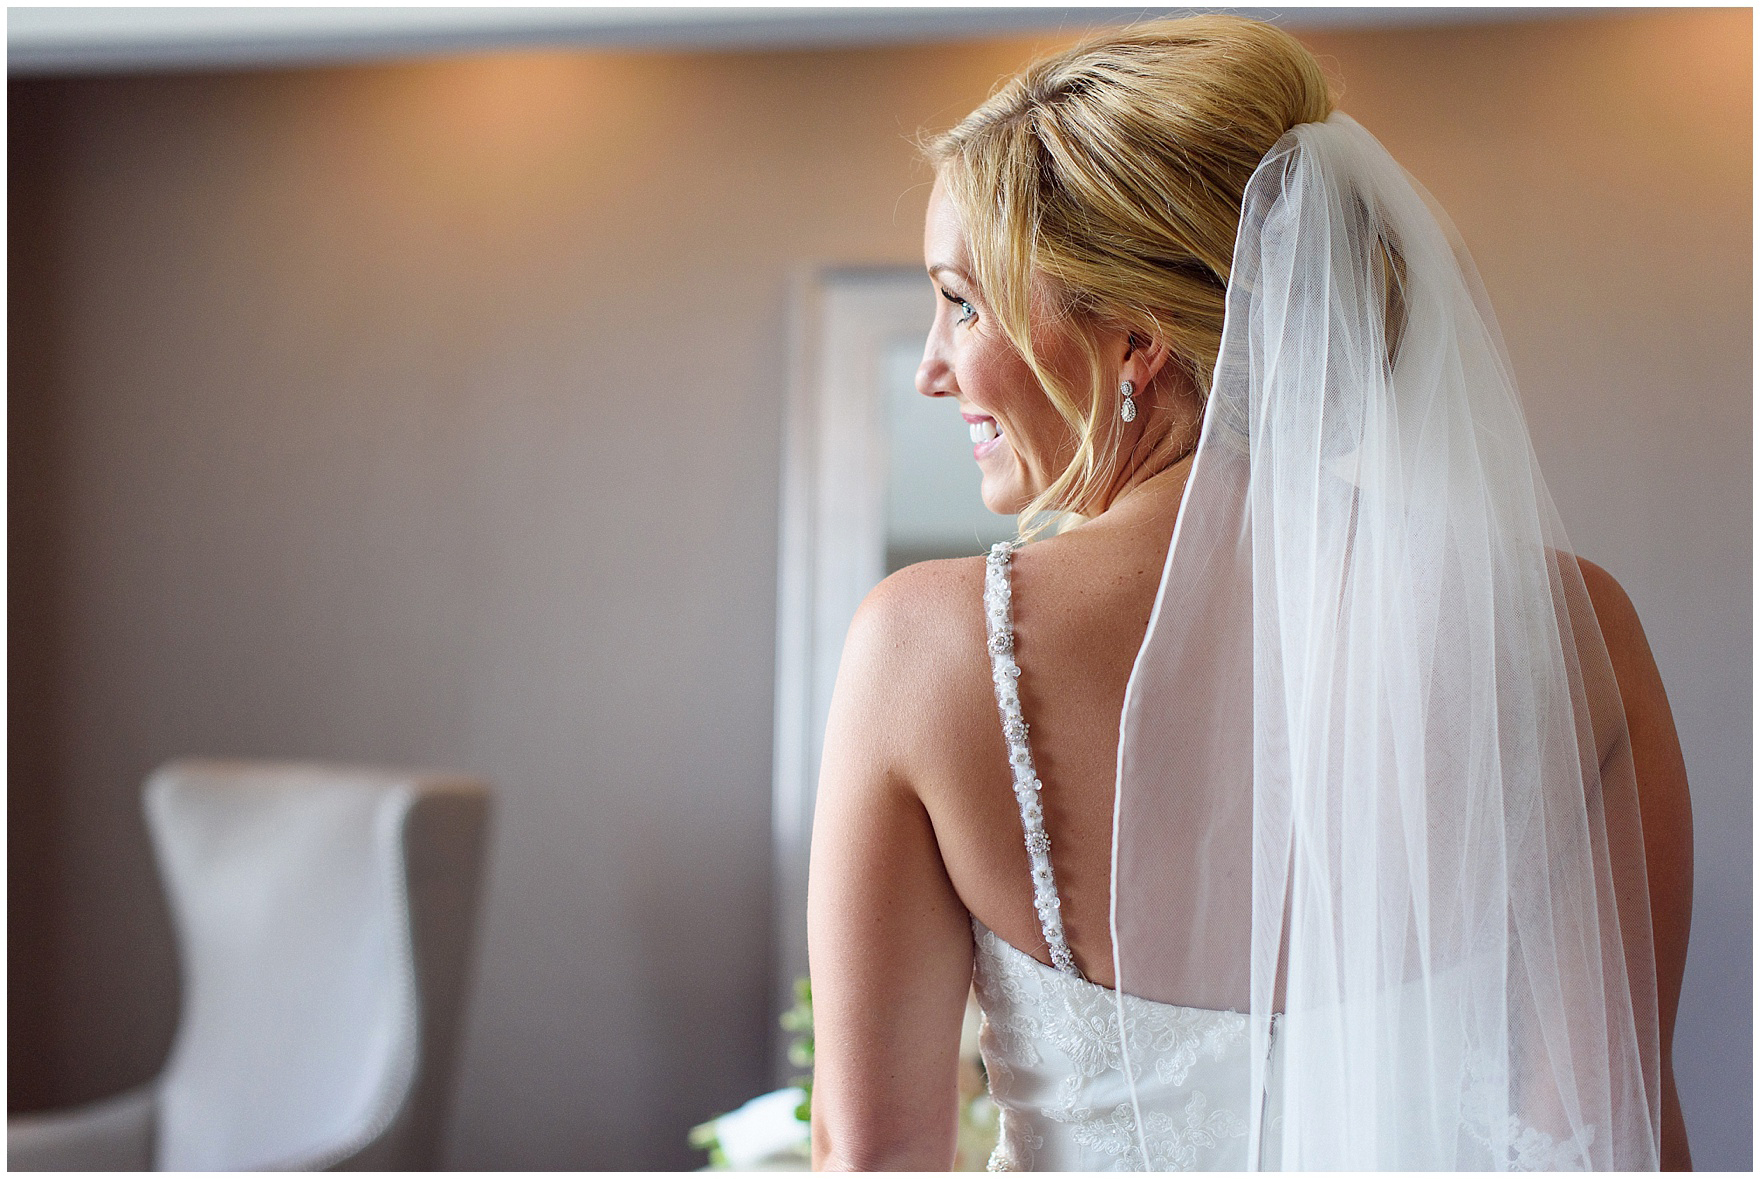 The bride is ready for an Itasca Country Club Illinois wedding.